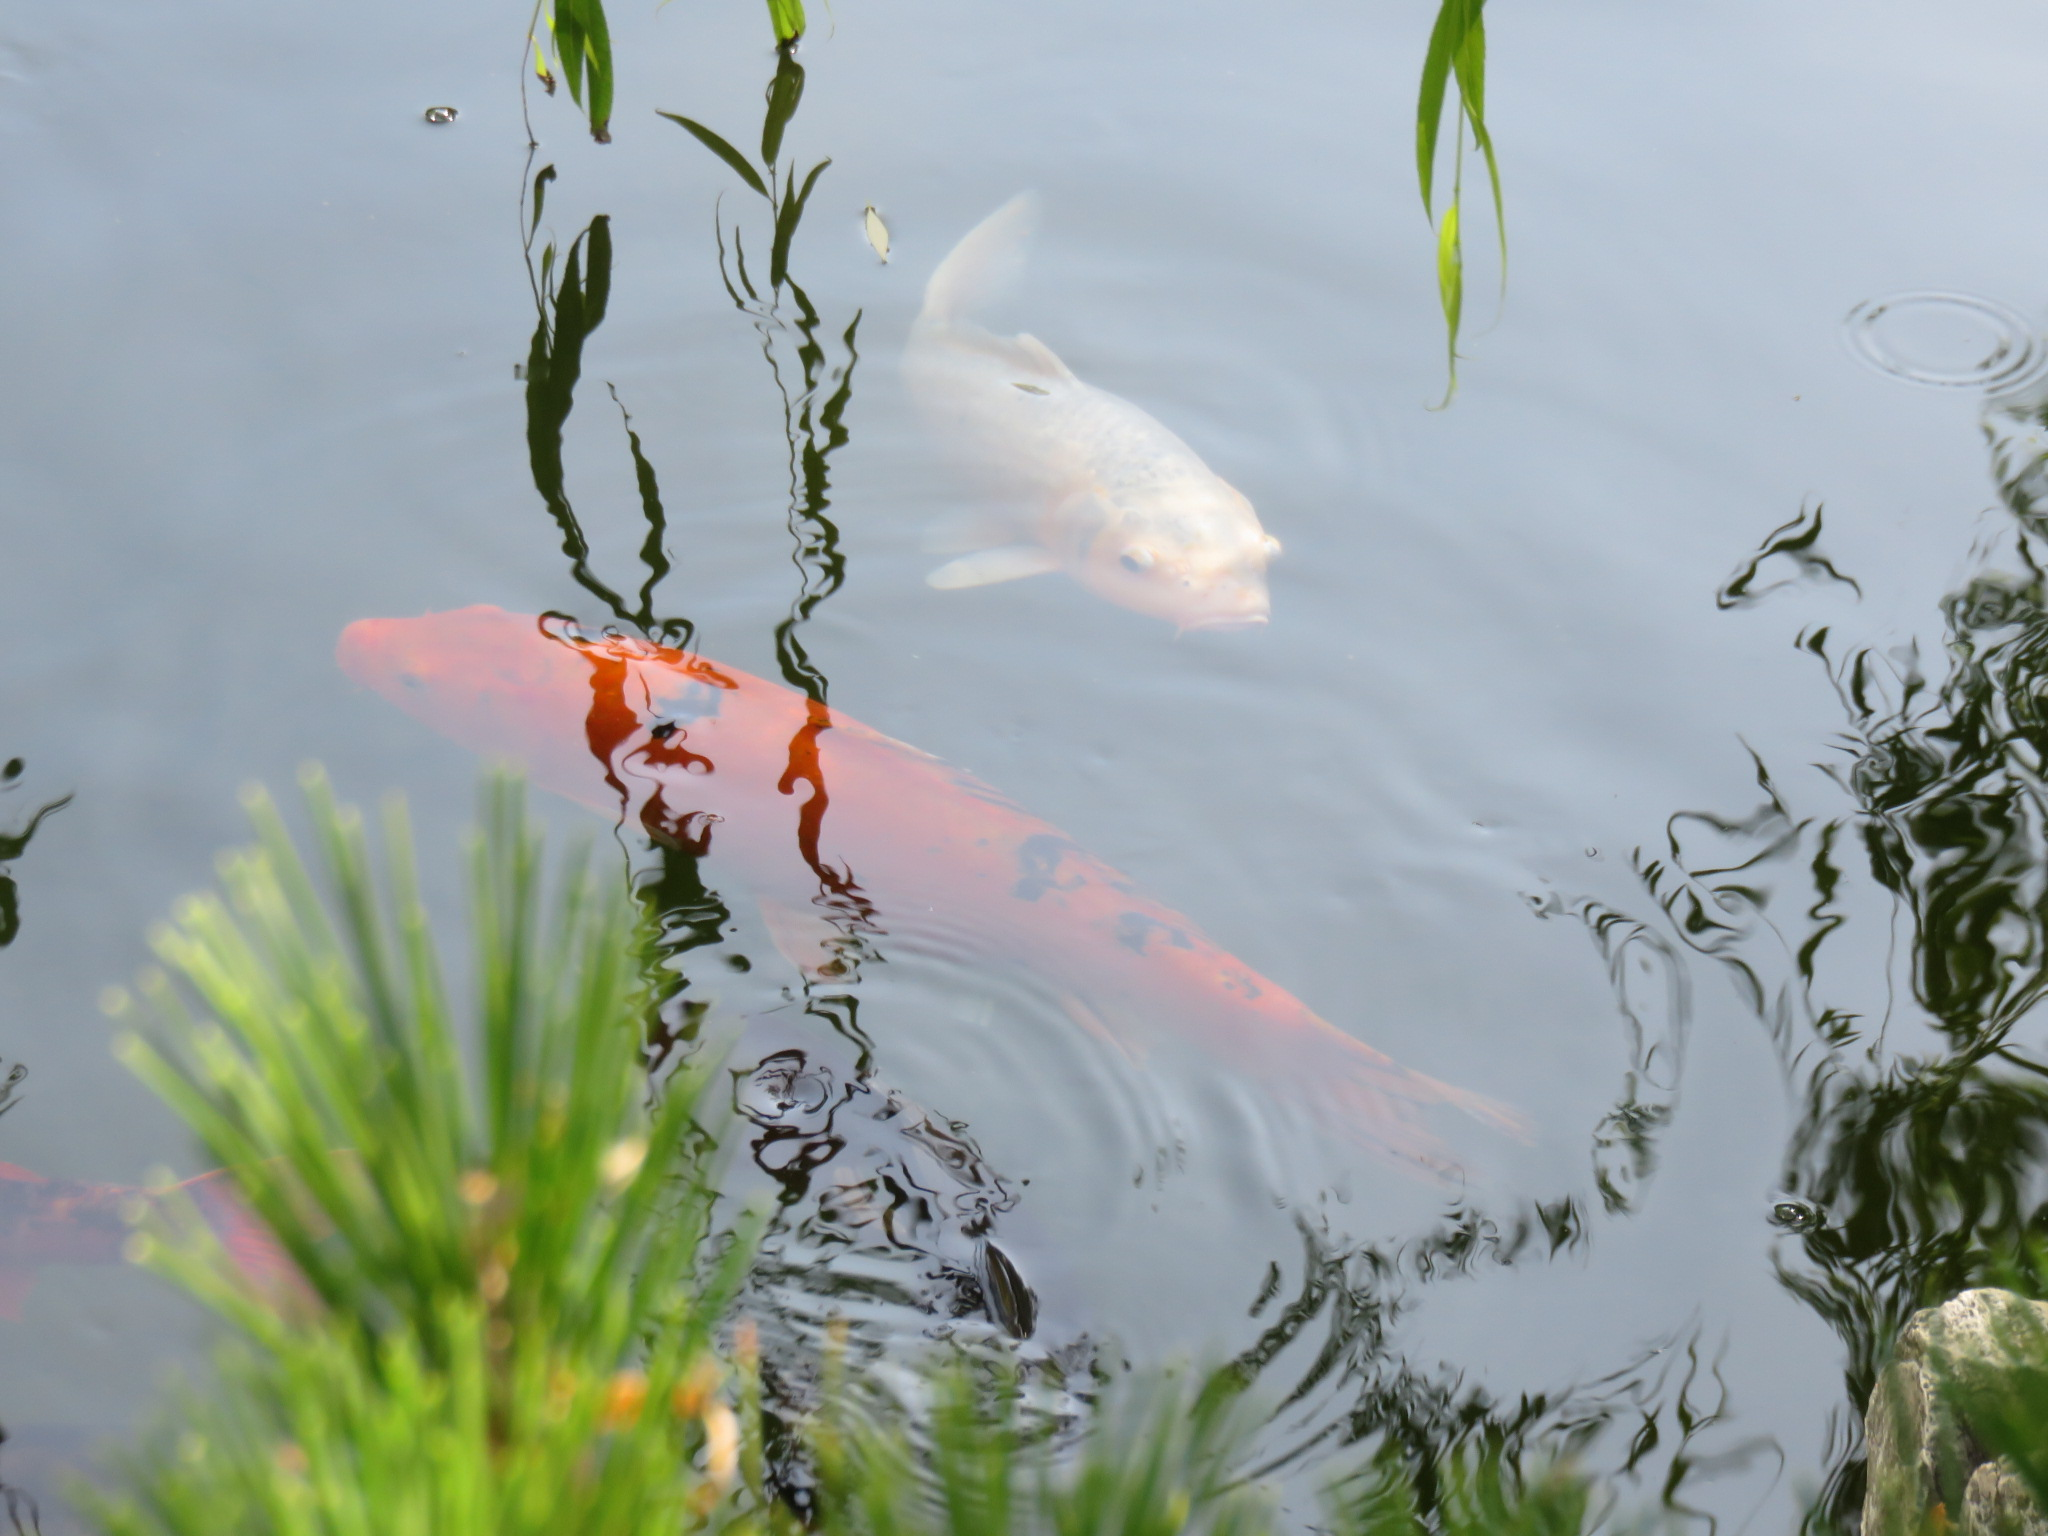 Koi Fish | Botanical Gardens